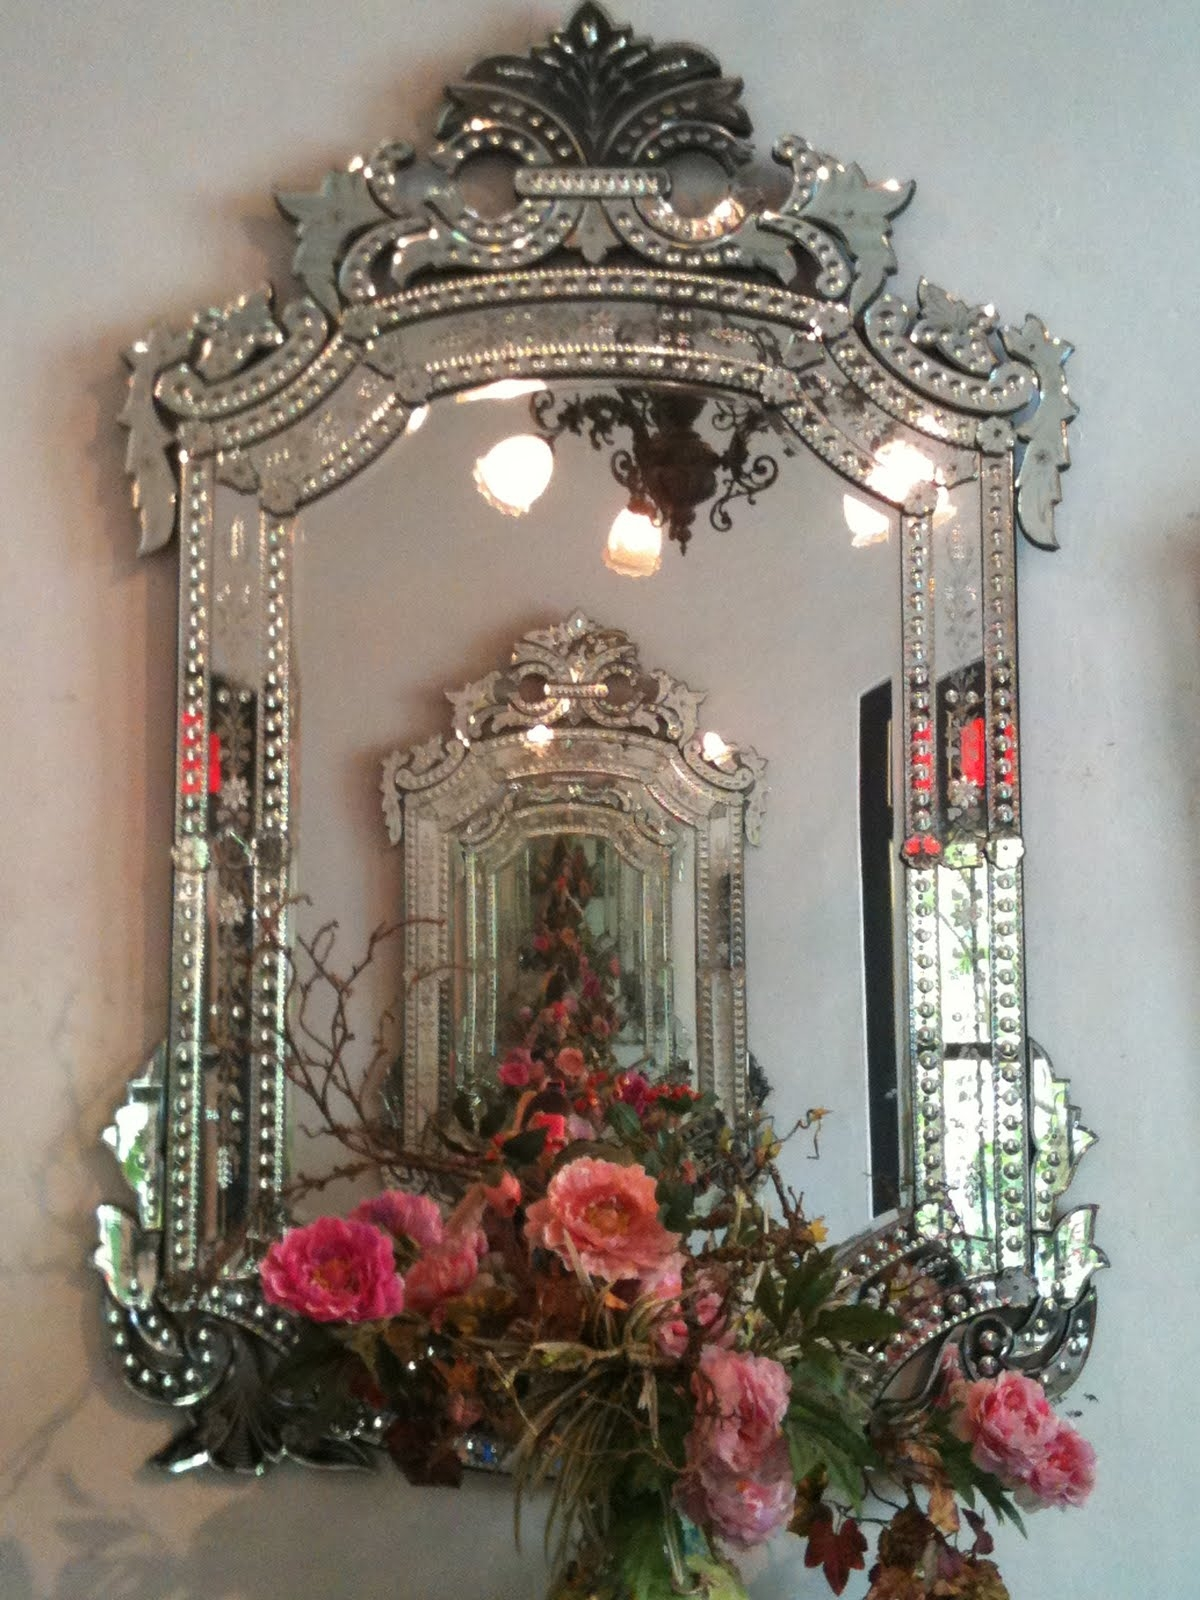 Venetian Mirror Ami The Prettiest Asked The Rose Ohhhh I Love Pertaining To Venetian Mirror Sale (Image 11 of 15)